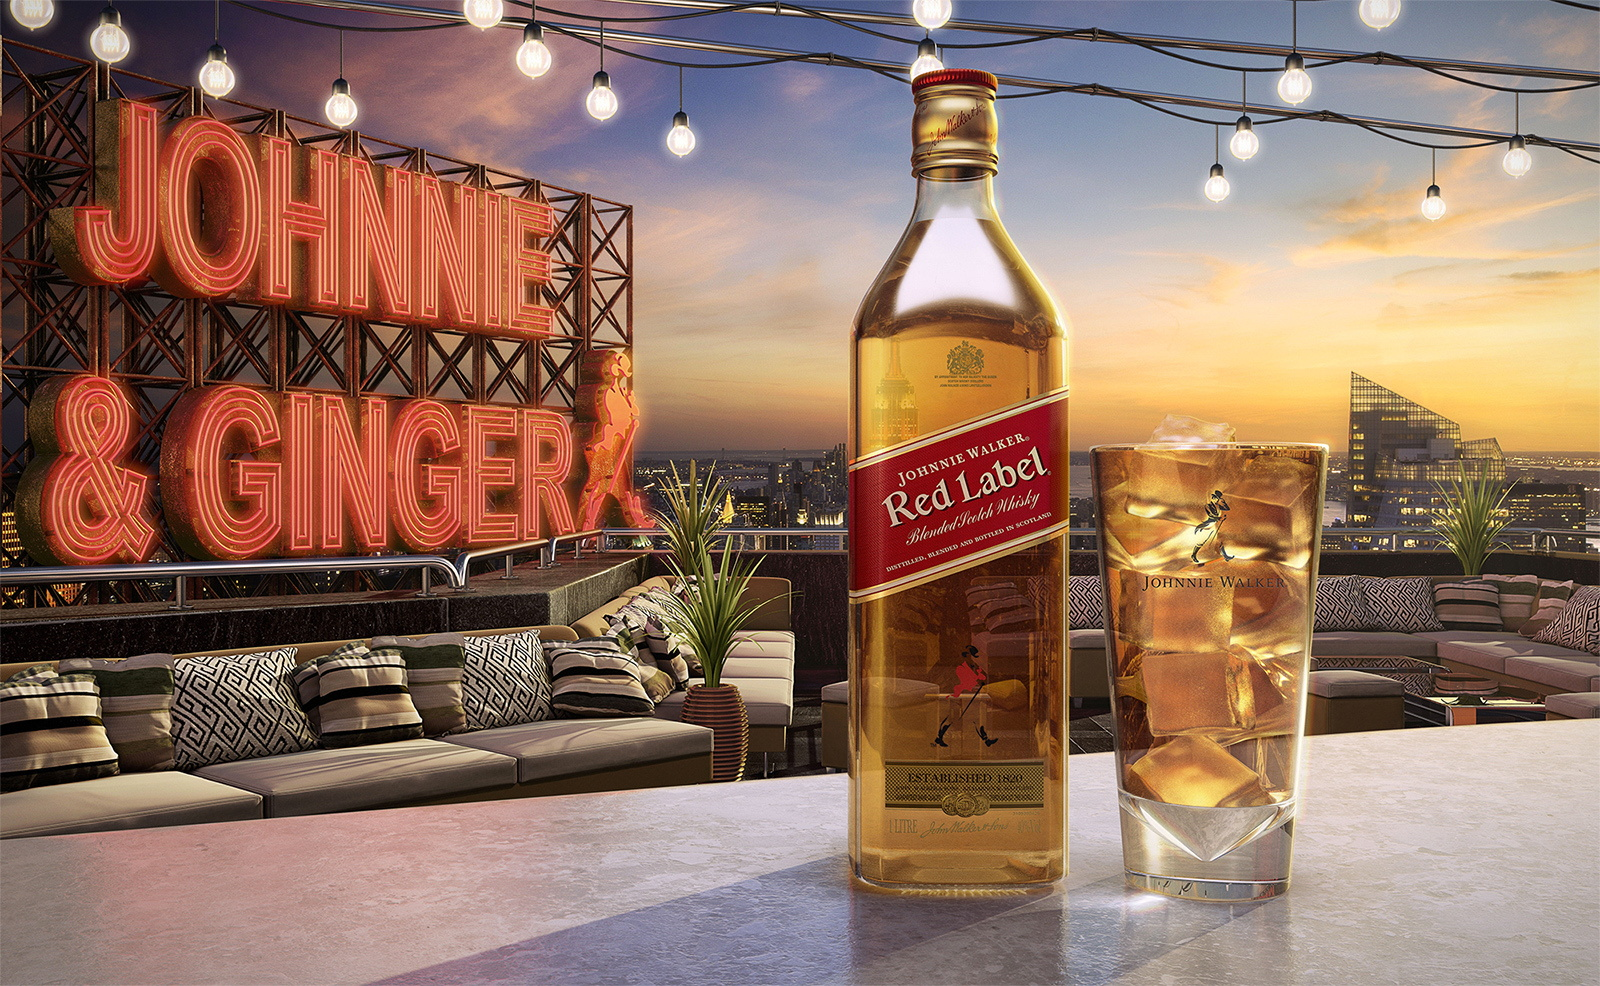 cgi johnnie walker bottle and glass with a cityscape background